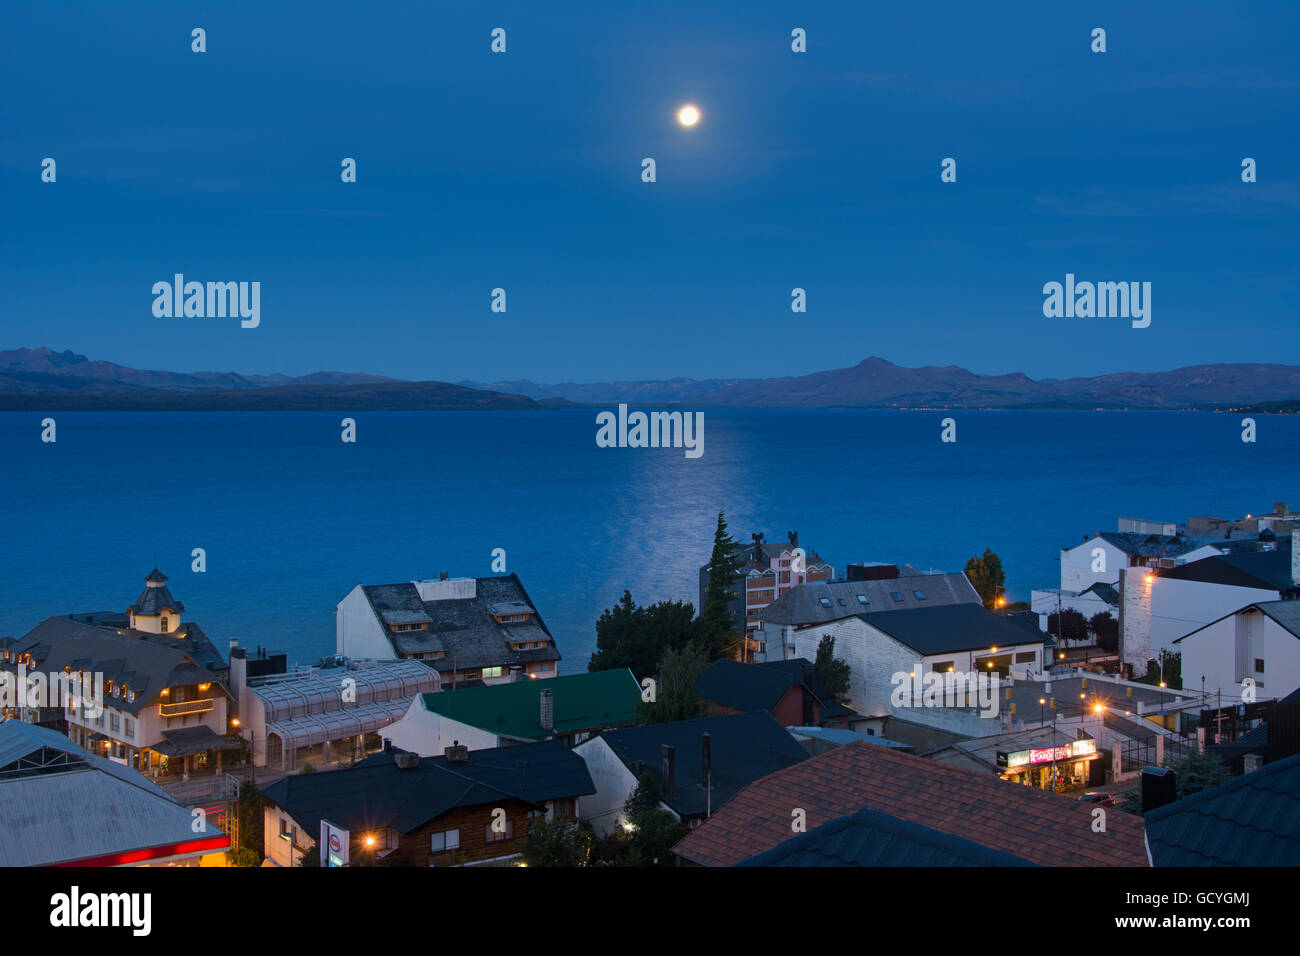 The moon rising over a lake from above the town roof tops showing some yellow city lights against the blue scene; - Stock Image